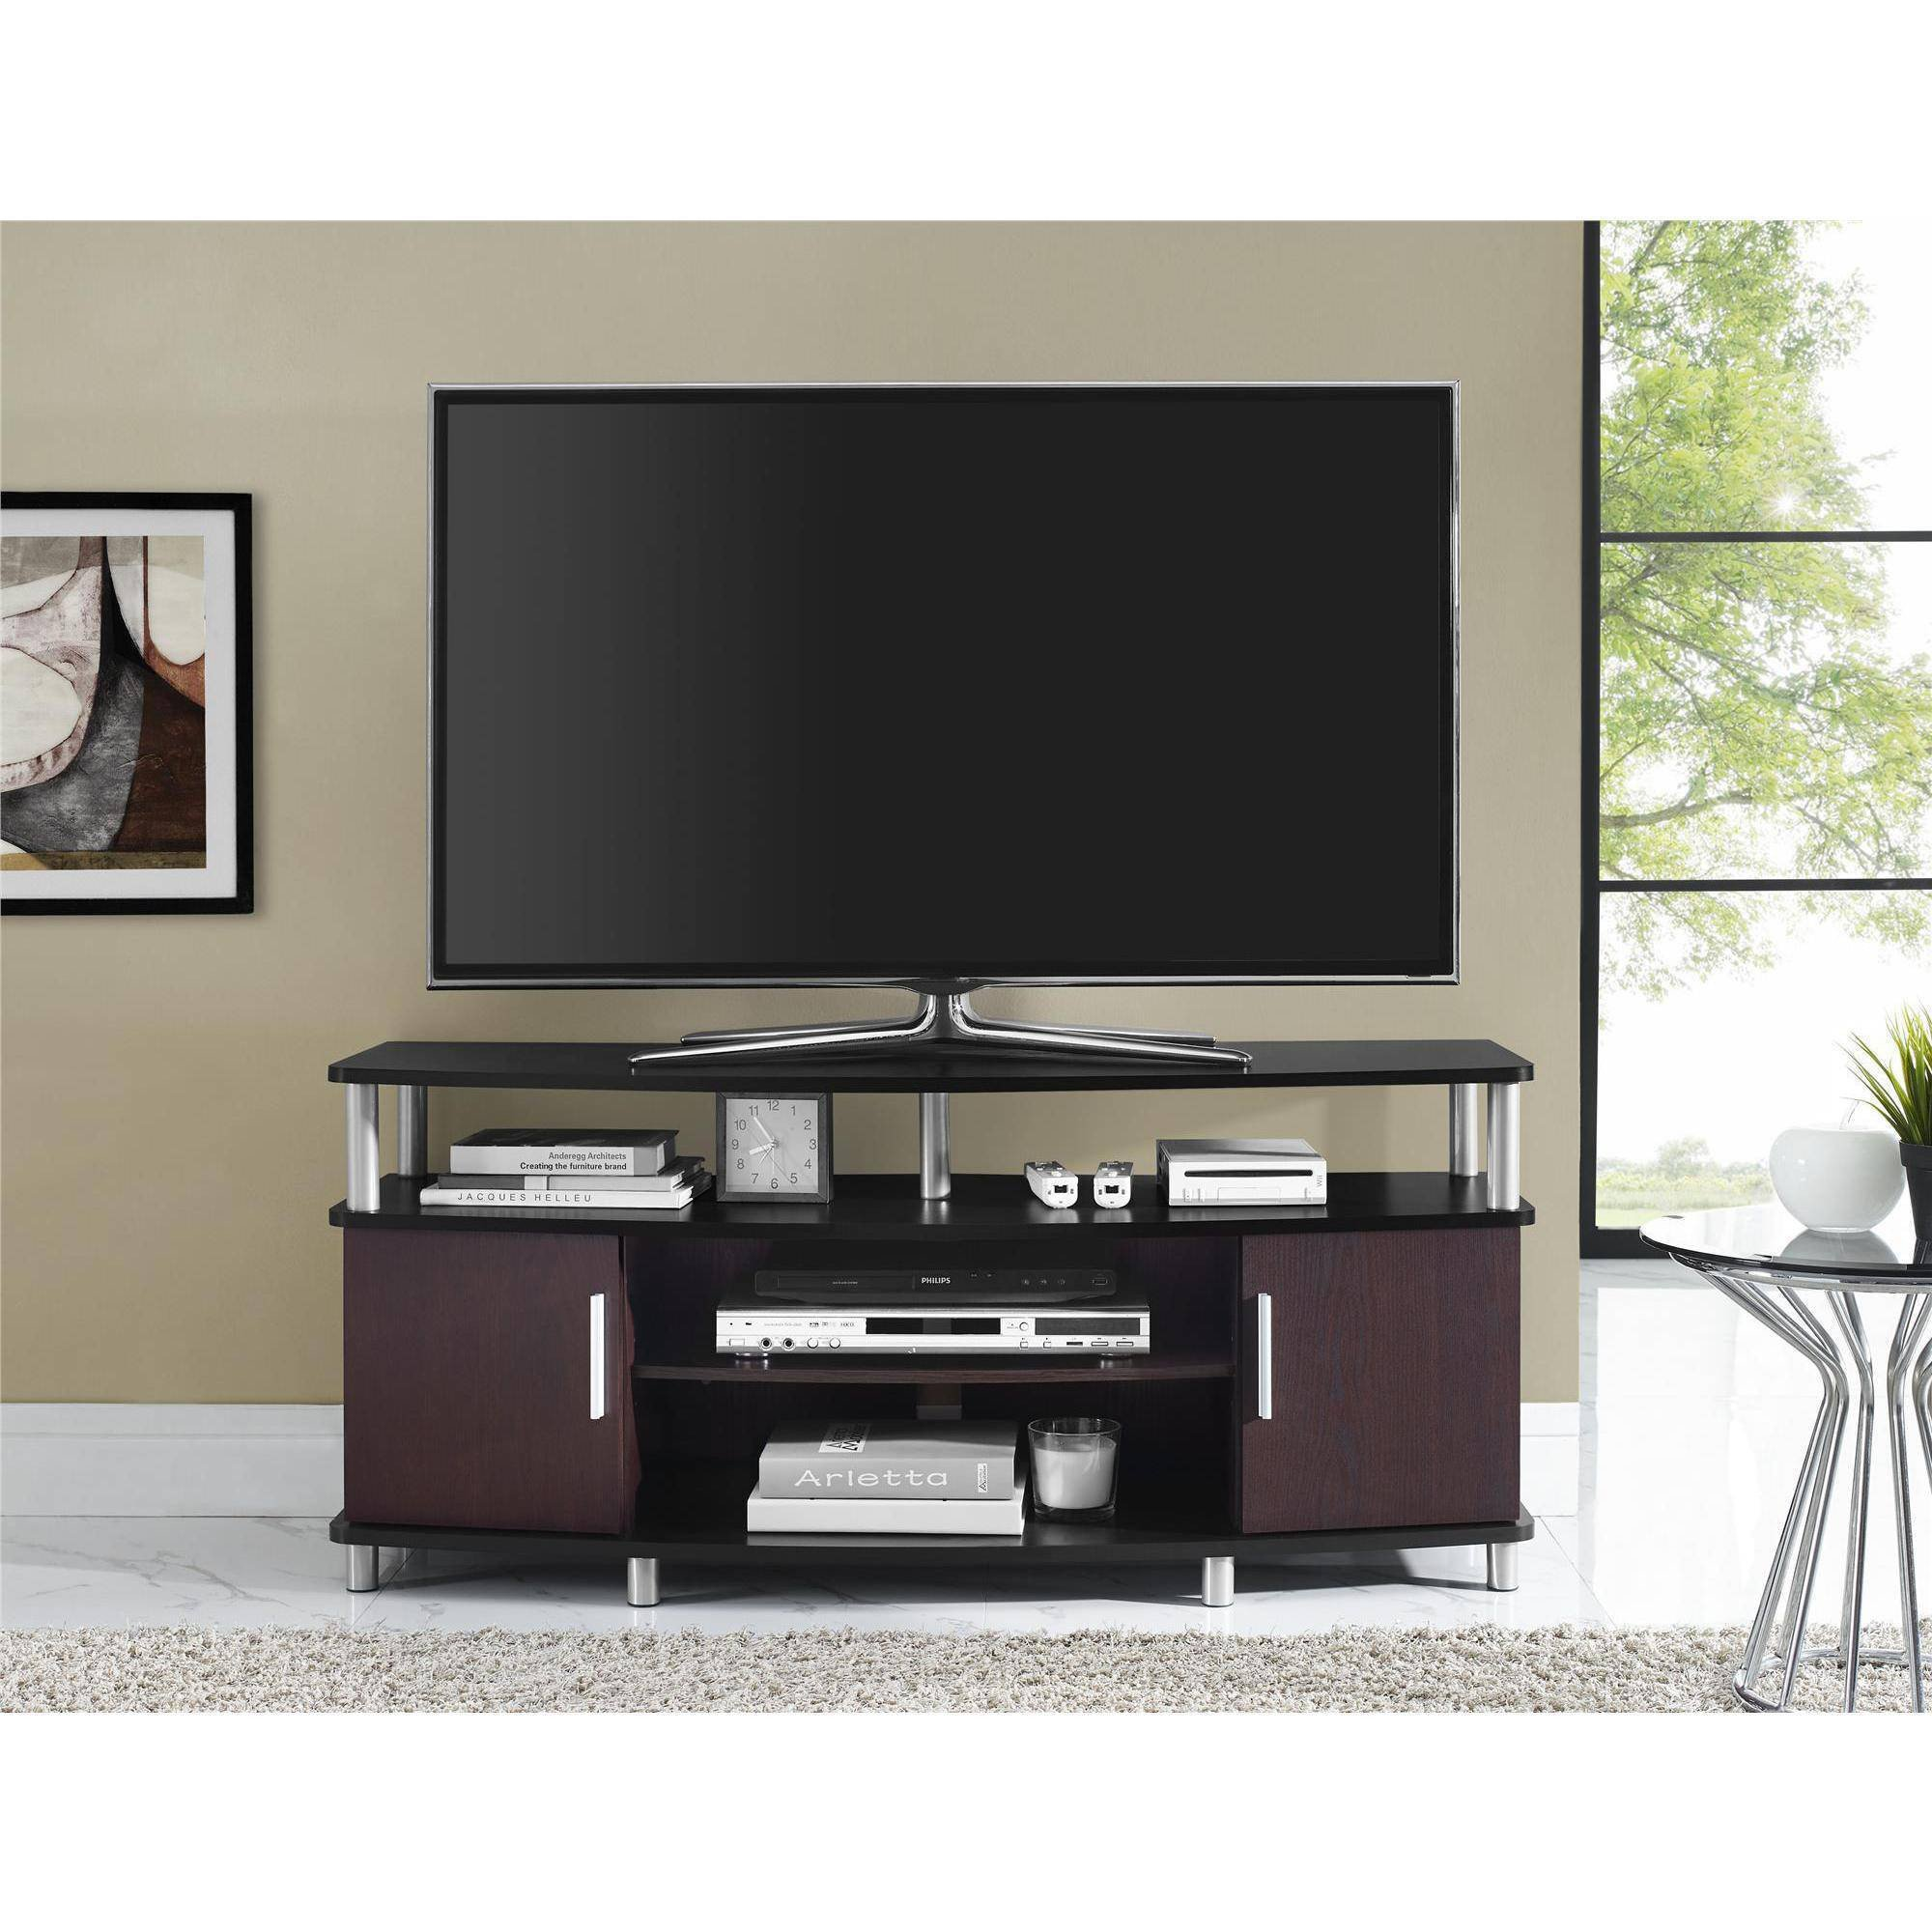 "Tall Tv Stand for Bedroom Best Of Carson Tv Stand for Tvs Up to 50"" Multiple Finishes"